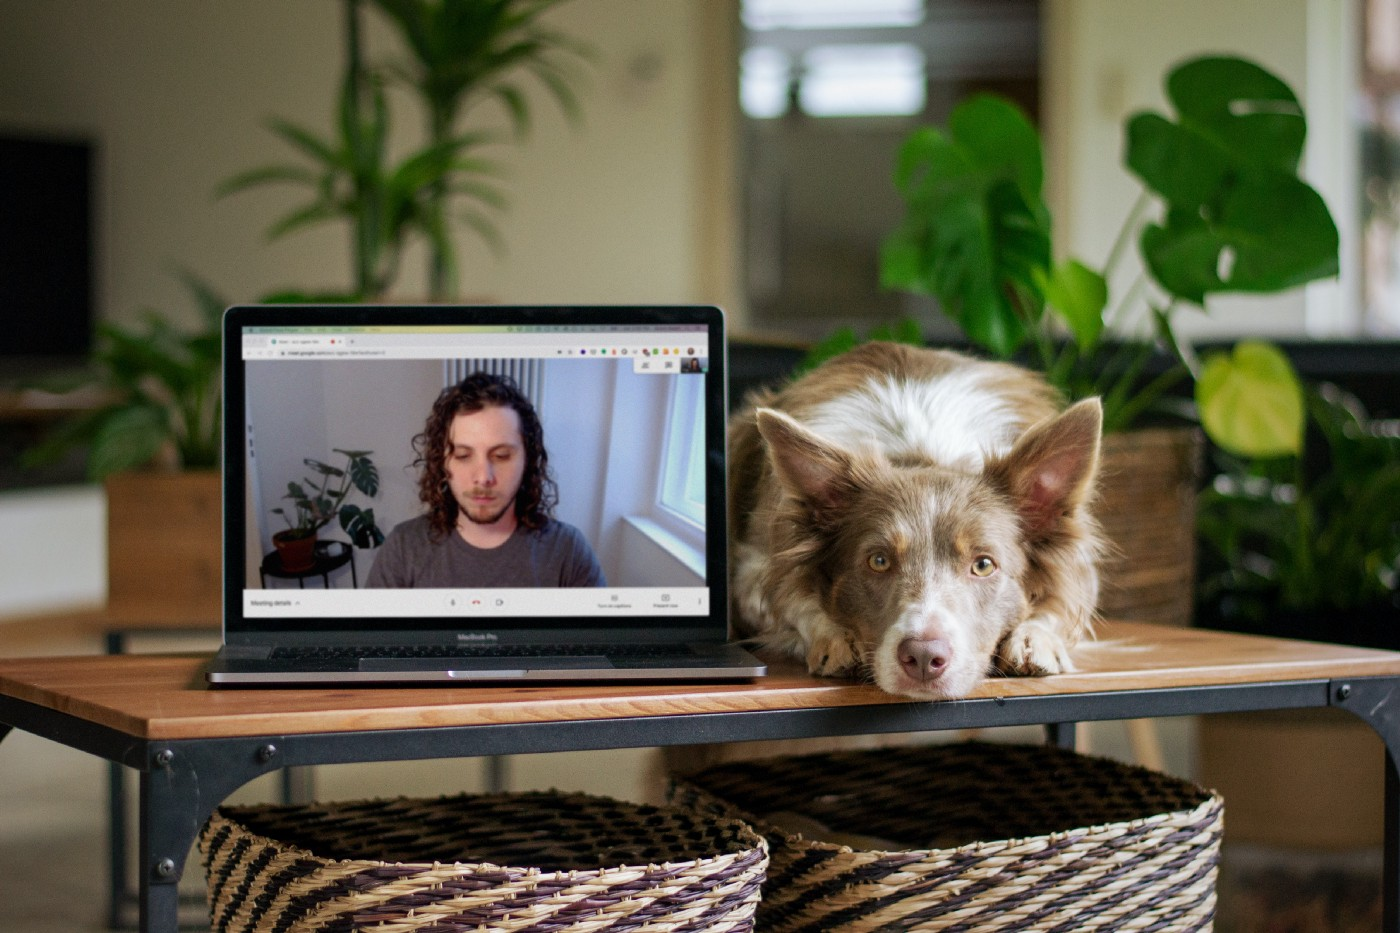 A photo of a Macbook with the author in a Google Meet call on the screen. Macbook is next to a dog on the table.